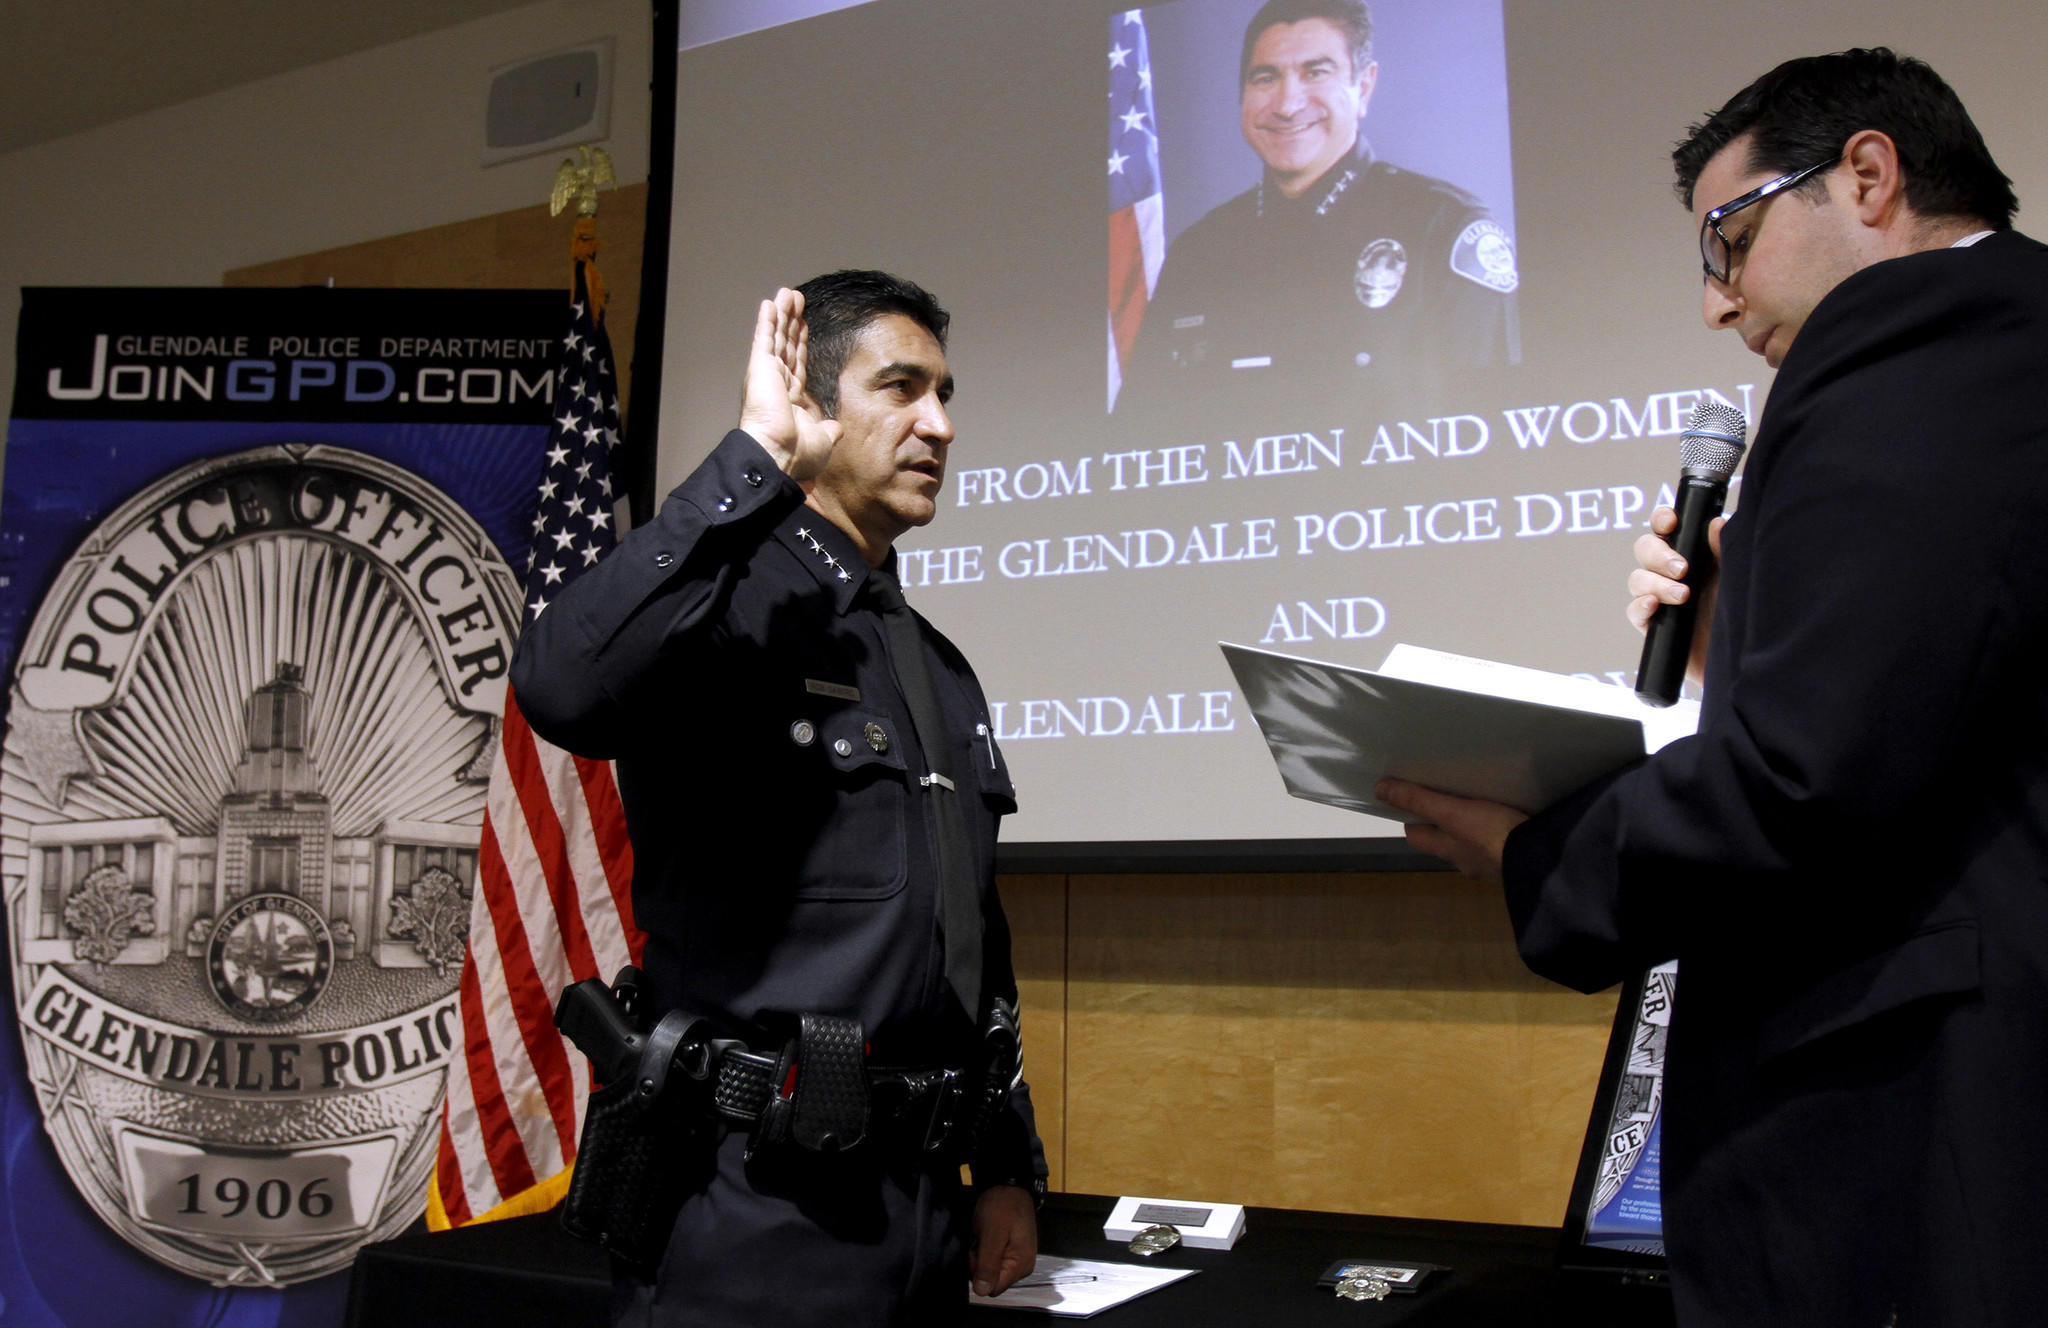 Glendale city clerk Ardashes Kassakhian, right, swears in the new Glendale Police chief Robert Castro, left, during a swearing in ceremony at the Glendale Police Dept. headquarters in Glendale on Thursday, Dec. 19, 2013.